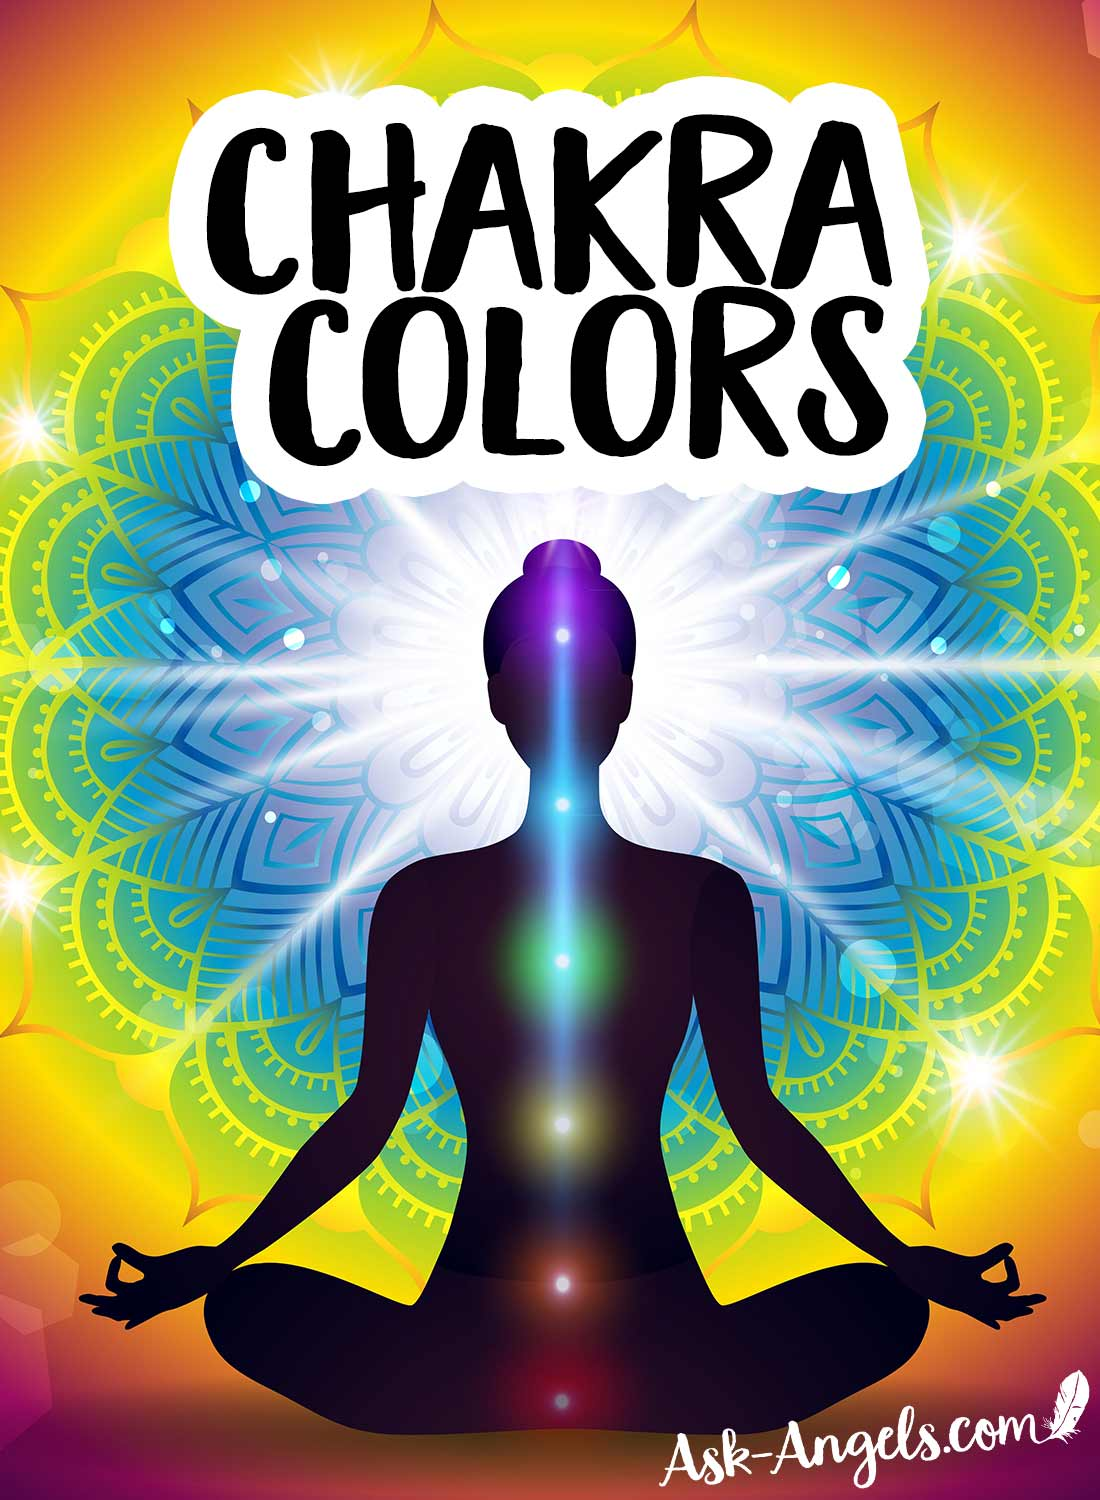 Chakra Colors – Ultimate Guide to The 7 Chakra Colors and Meanings